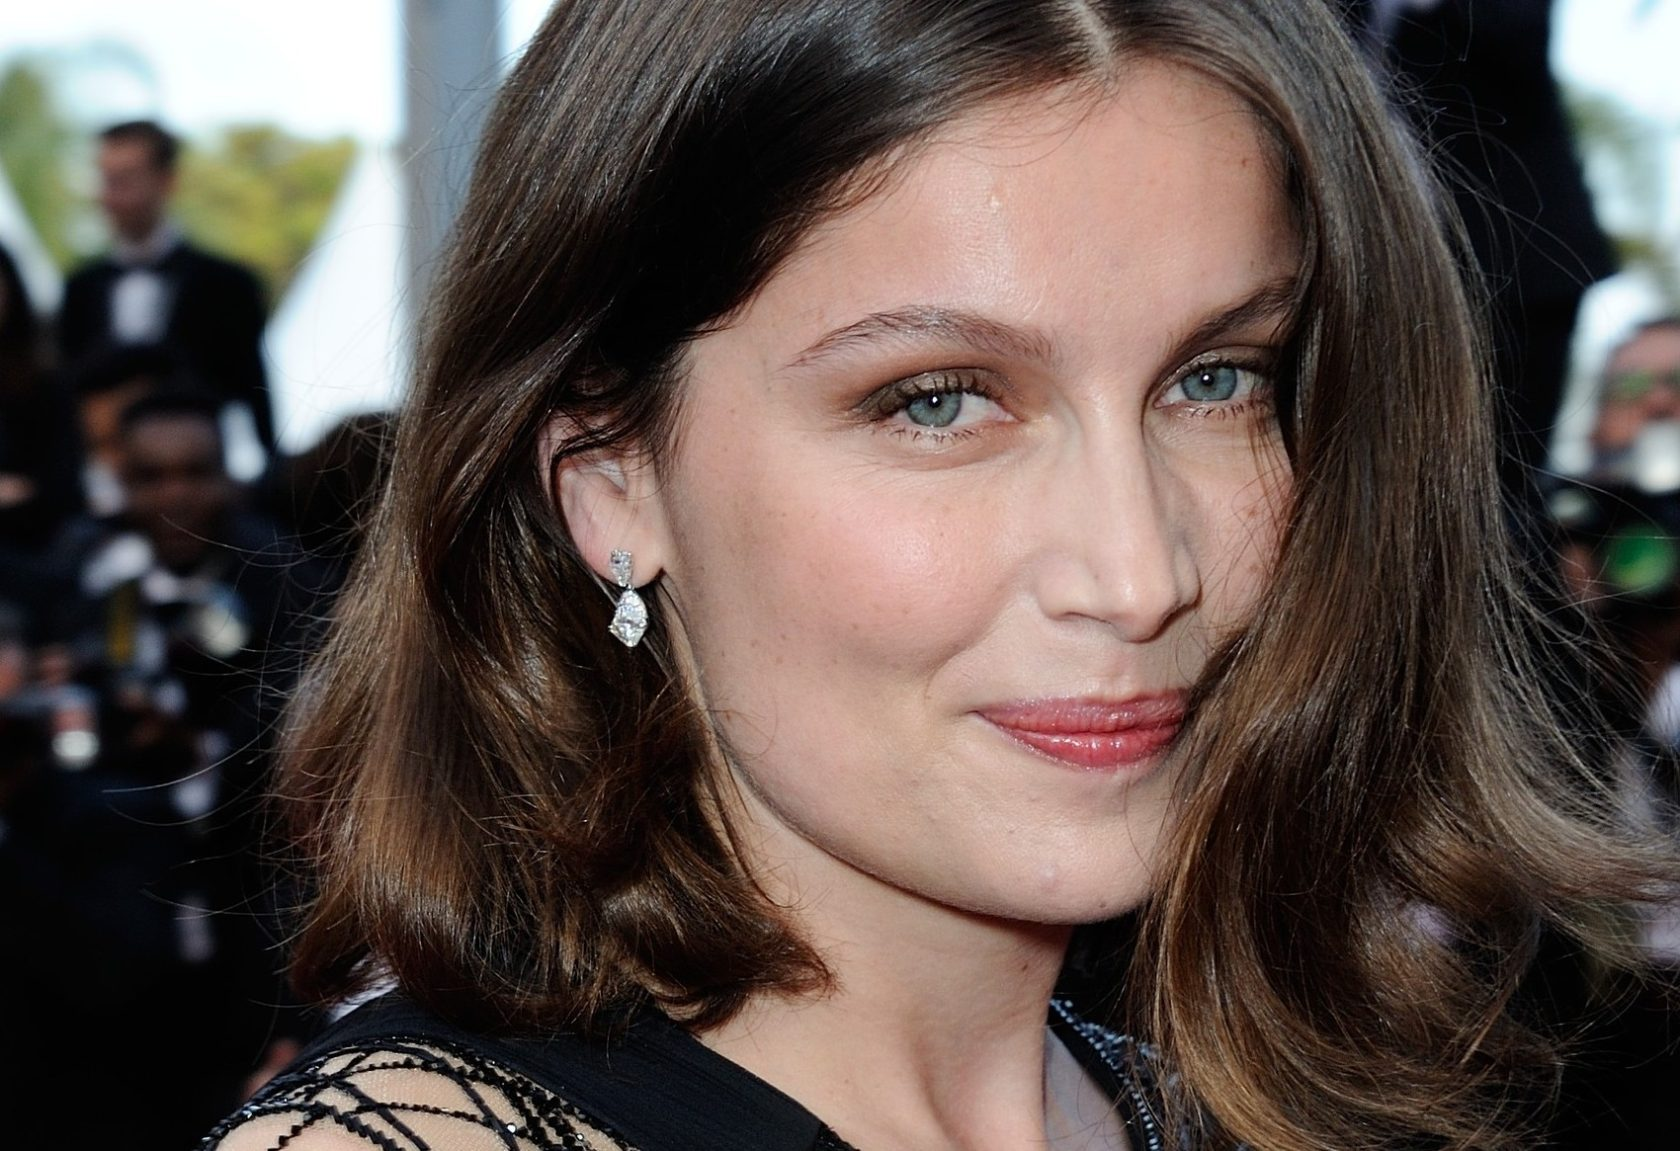 Laetitia Casta attending the 'La Fille Inconnue' screening at the Palais Des Festivals in Cannes, France on May 18, 2016, as part of the 69th Cannes Film Festival., Image: 285738583, License: Rights-managed, Restrictions: , Model Release: no, Credit line: Profimedia, Abaca